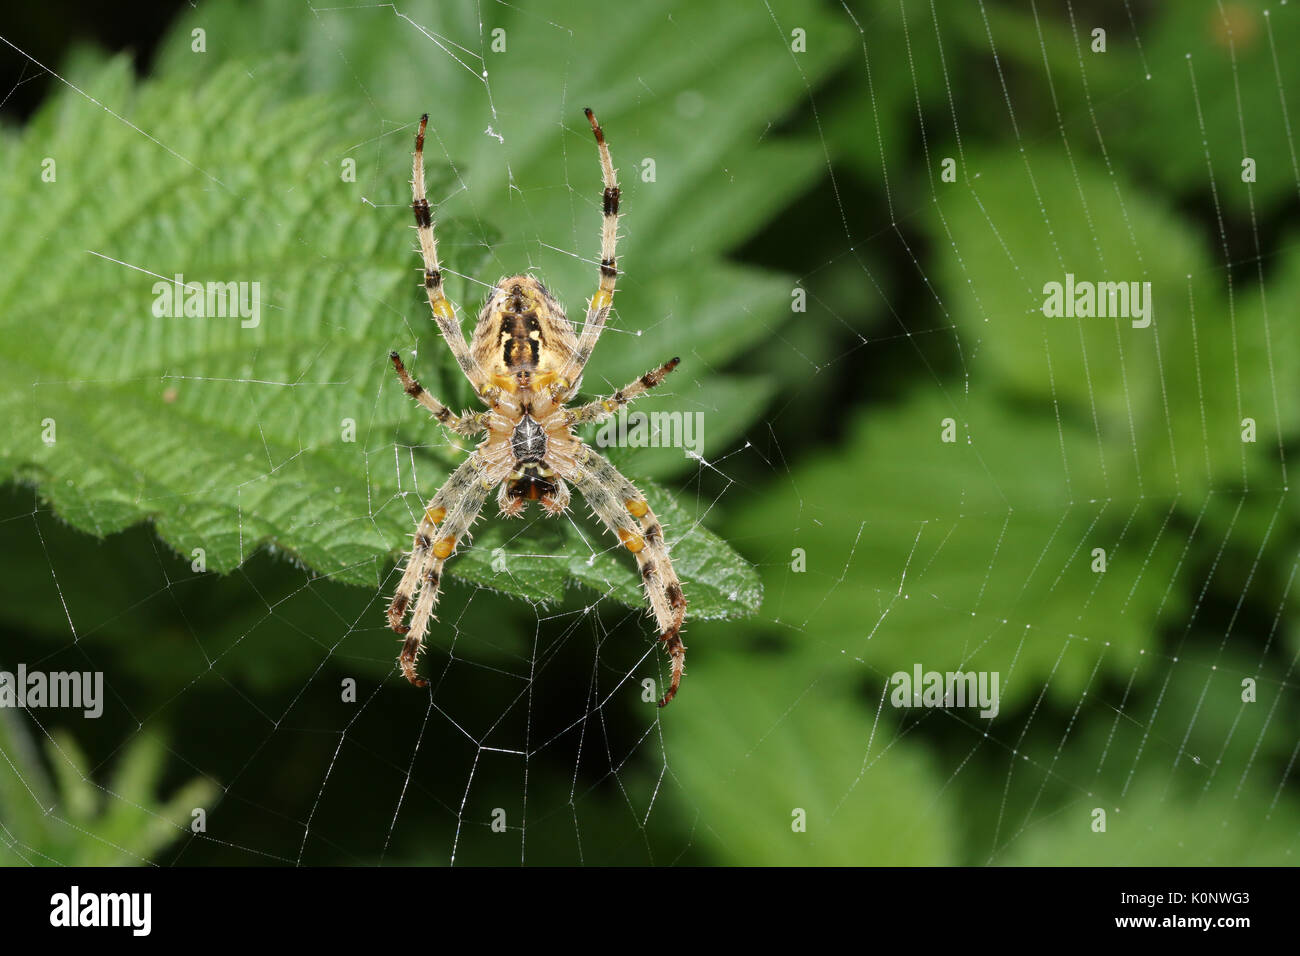 The underside of a  European Garden Spider or Cross Orb-Weaver (Araneus diadematus) perched on its web. - Stock Image